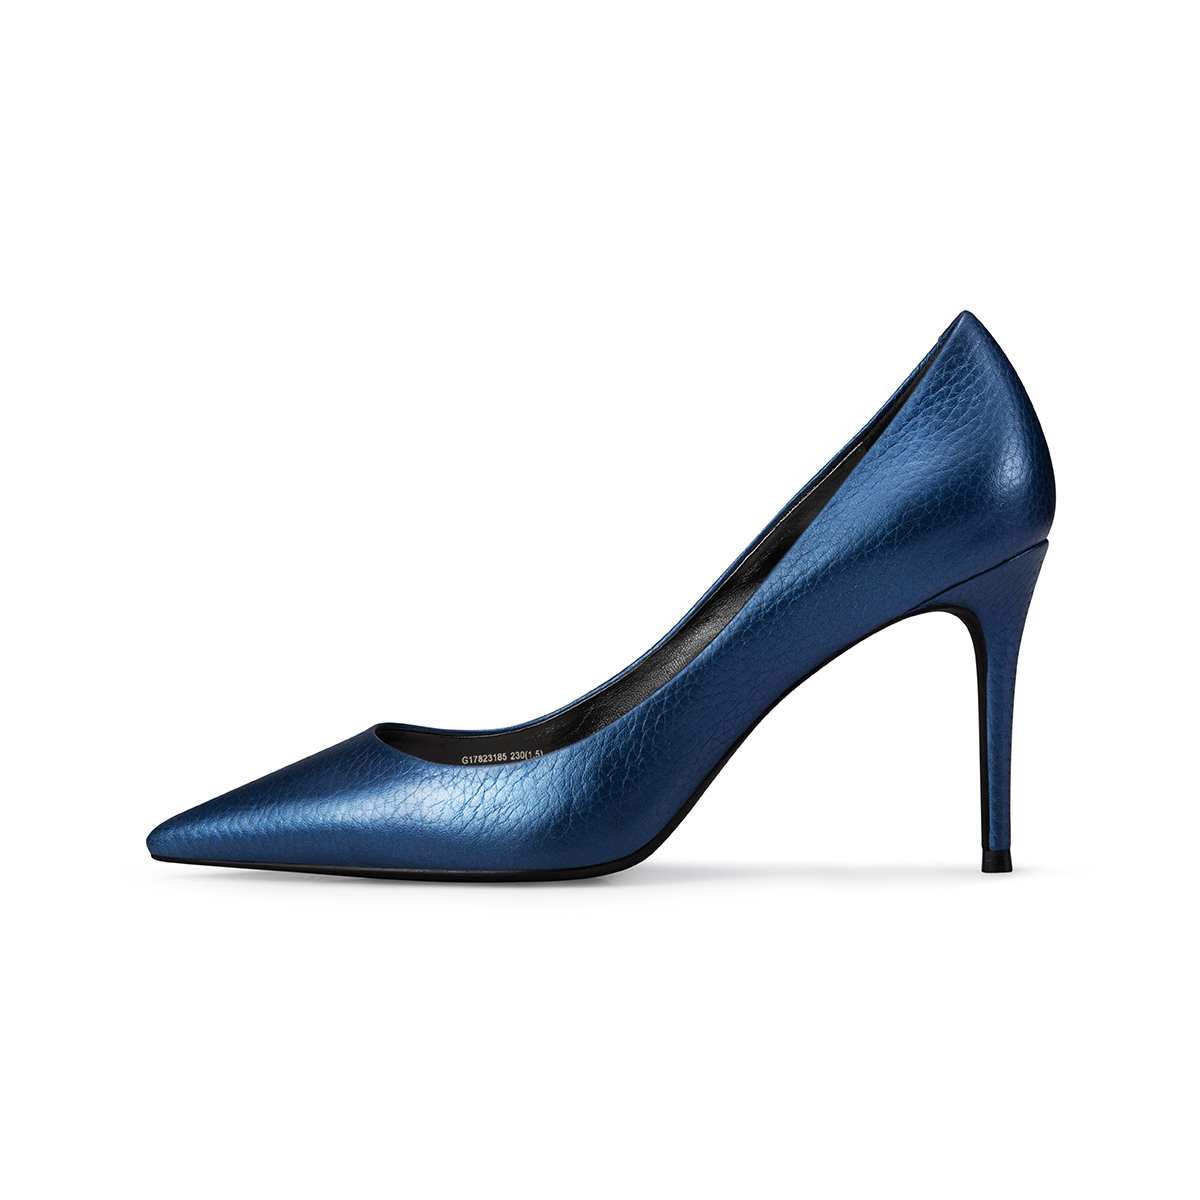 GAOZZE Designer Ladies Classic Shoes Pumps Pointed Toe High Heels For Women 2018 Spring Women Genuine Leather Office Pumps Shoes hee grand sweet patent leather women oxfords shoes for spring pointed toe platform low heels pumps brogue shoes woman xwd6447